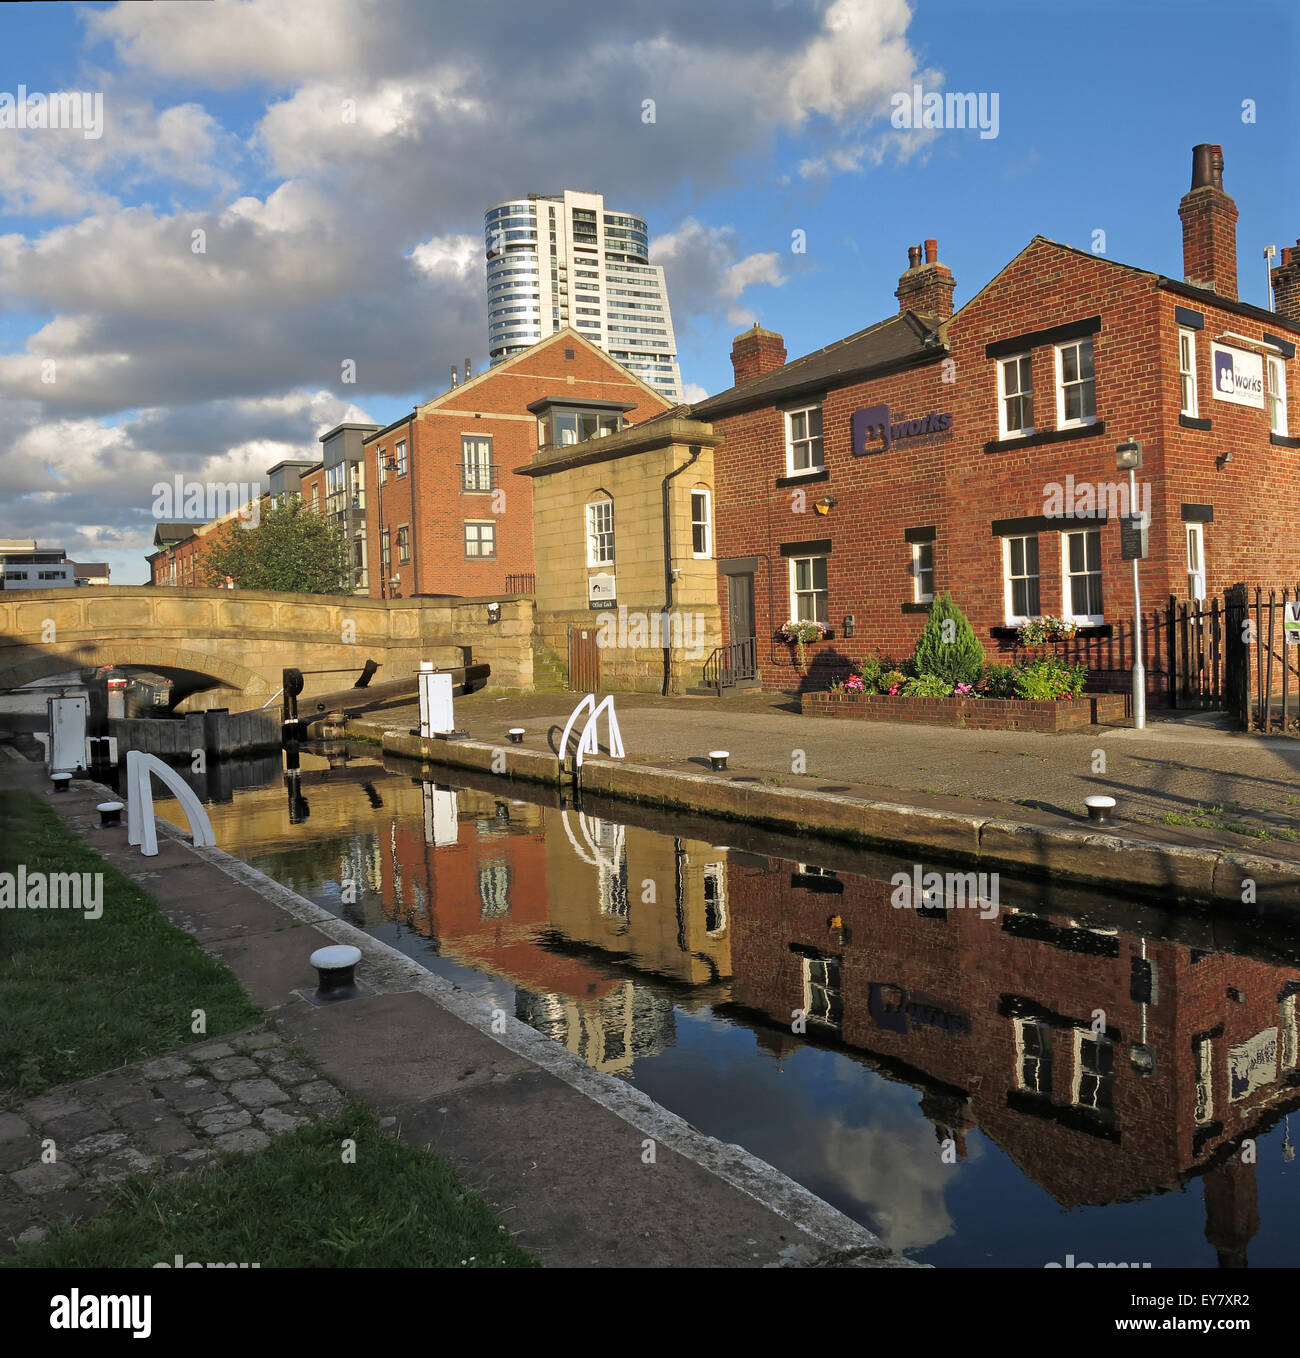 United Kingdom,UK,Liverpool,Canal,old,new,building,buildings,evening,sunshine,tourist,area,Granary,water,taxi,Armouries,Clarence,Dock,docks,workspace,cafe,eating,restaurant,boardwalk,pier,newdock,waterside,boat,boats,Leeds wharf,Wharf lock,Great Britain,Leeds Liverpool Canal,Granary Wharf,GoTonySmith,reflection,reflected,mirror,moody,sky,gate,house,office,offices,skyline,Buy Pictures of,Buy Images Of,Moody Sky,Lock Gates,Leeds Skyline